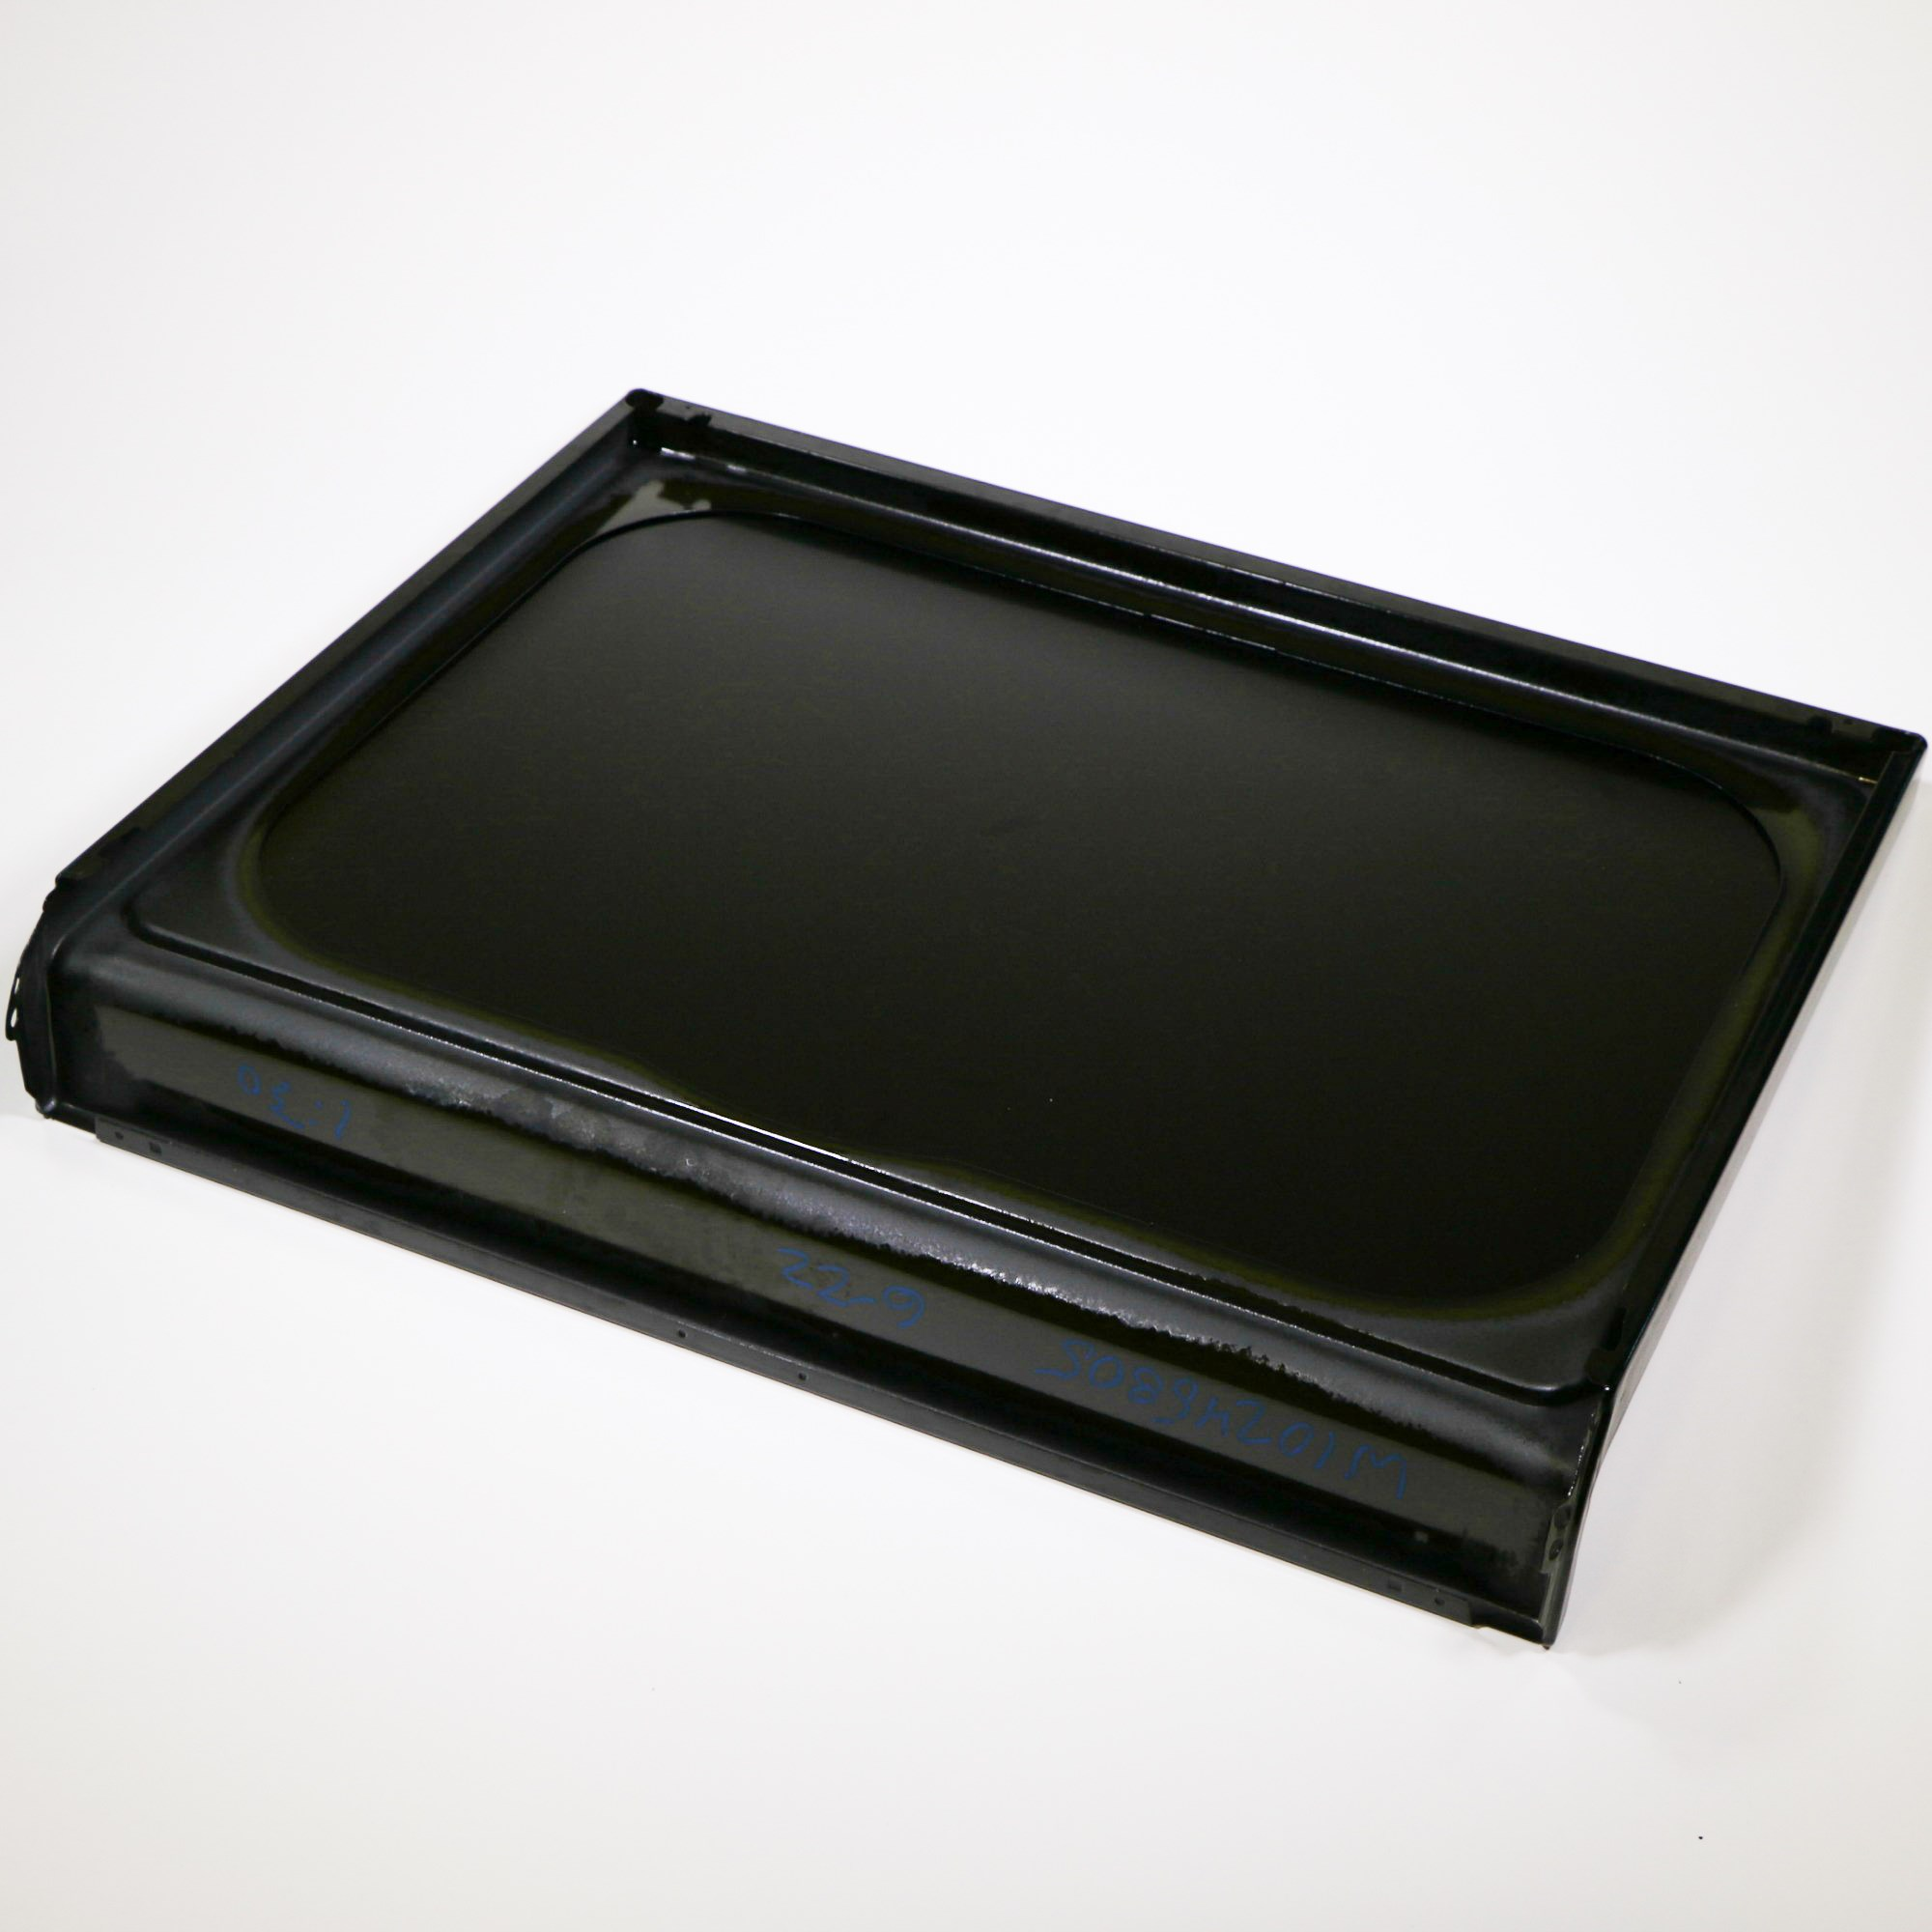 W10245805 For Whirlpool Range Glass Cooktop